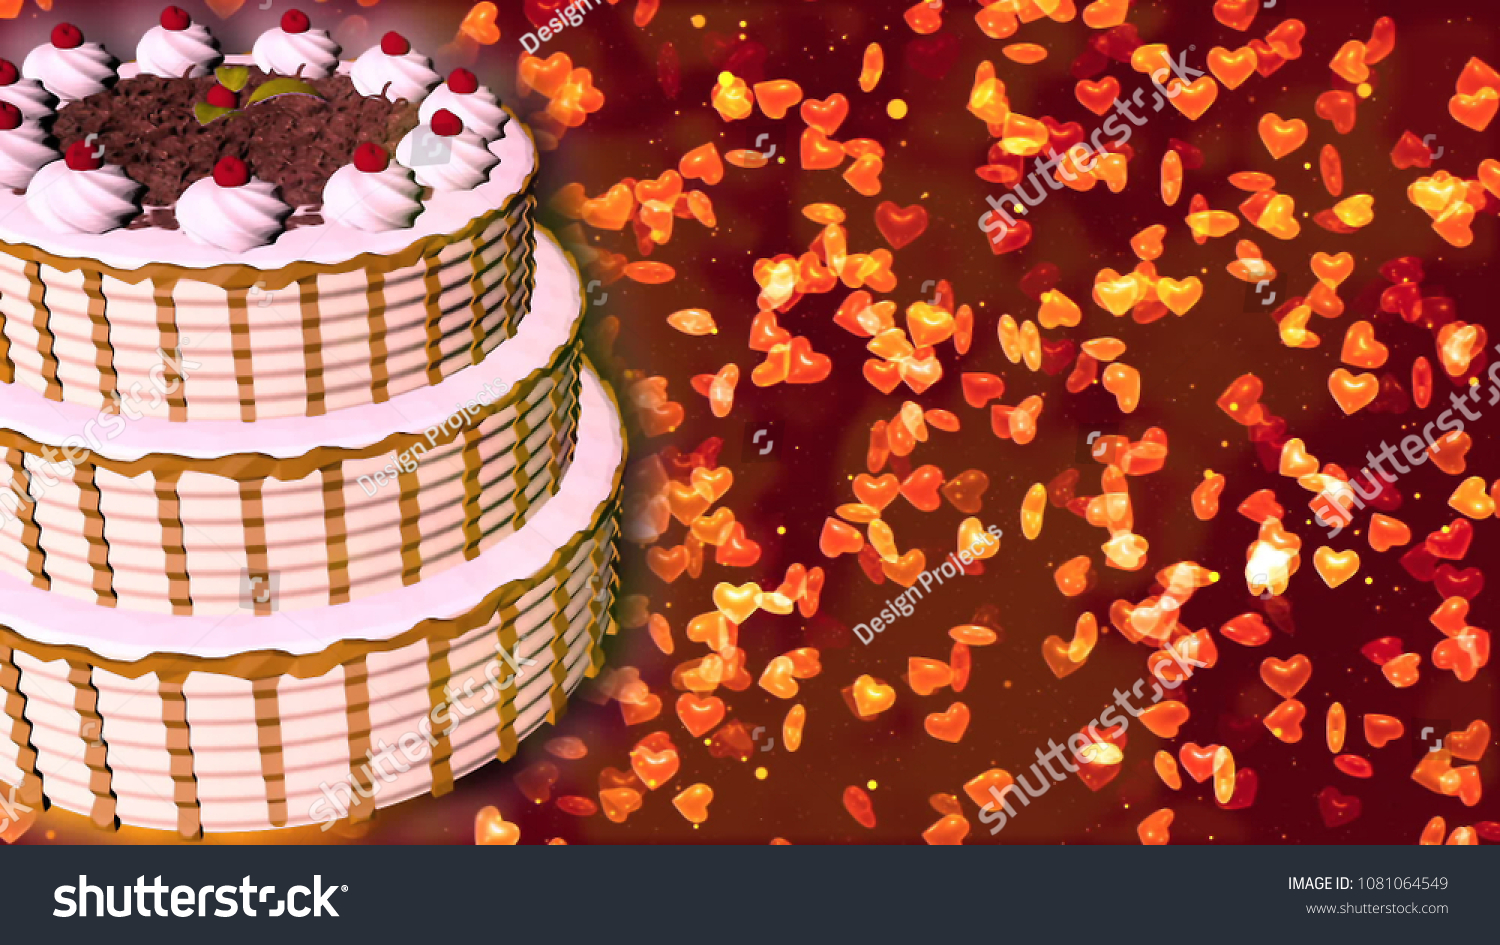 Happy Birthday Cake 3 D Rendering Stock Illustration 1081064549